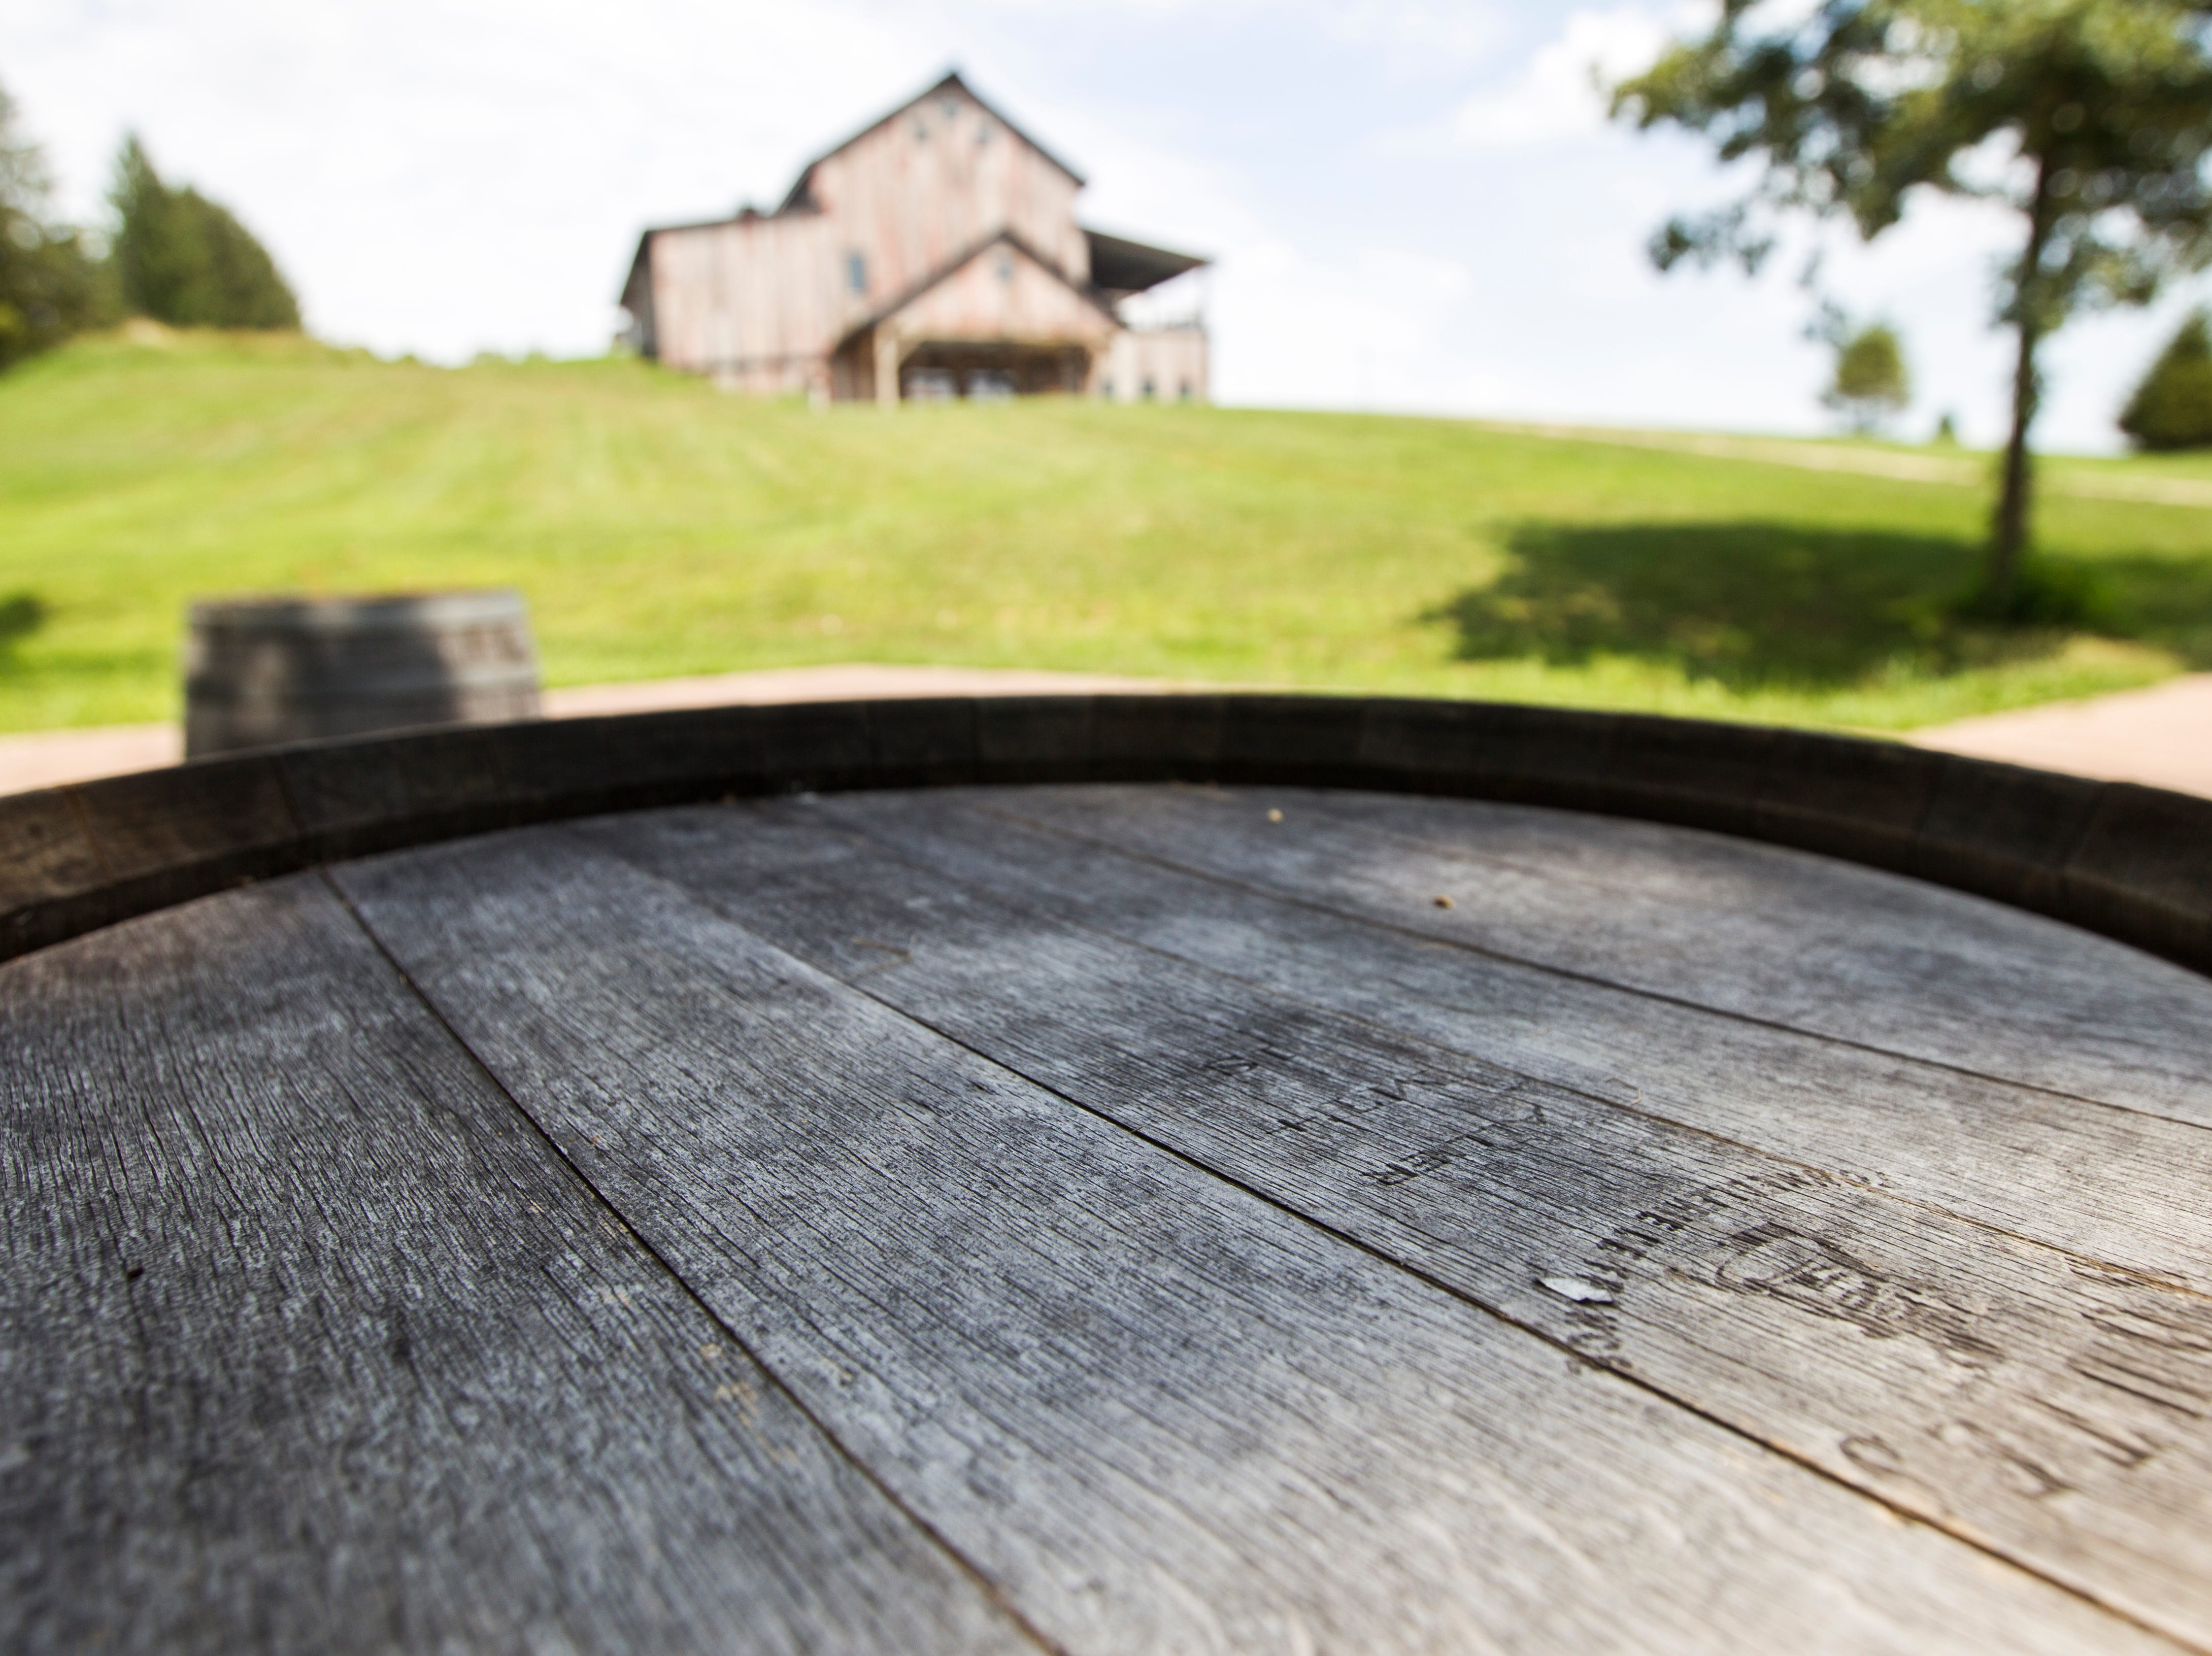 A barrel behind Rapid Creek Cidery is seen on Wednesday, Aug. 1, 2018, in Iowa City, Iowa. The lower floor of the building is designed for events and has a chapel area for weddings down a brick walkway.